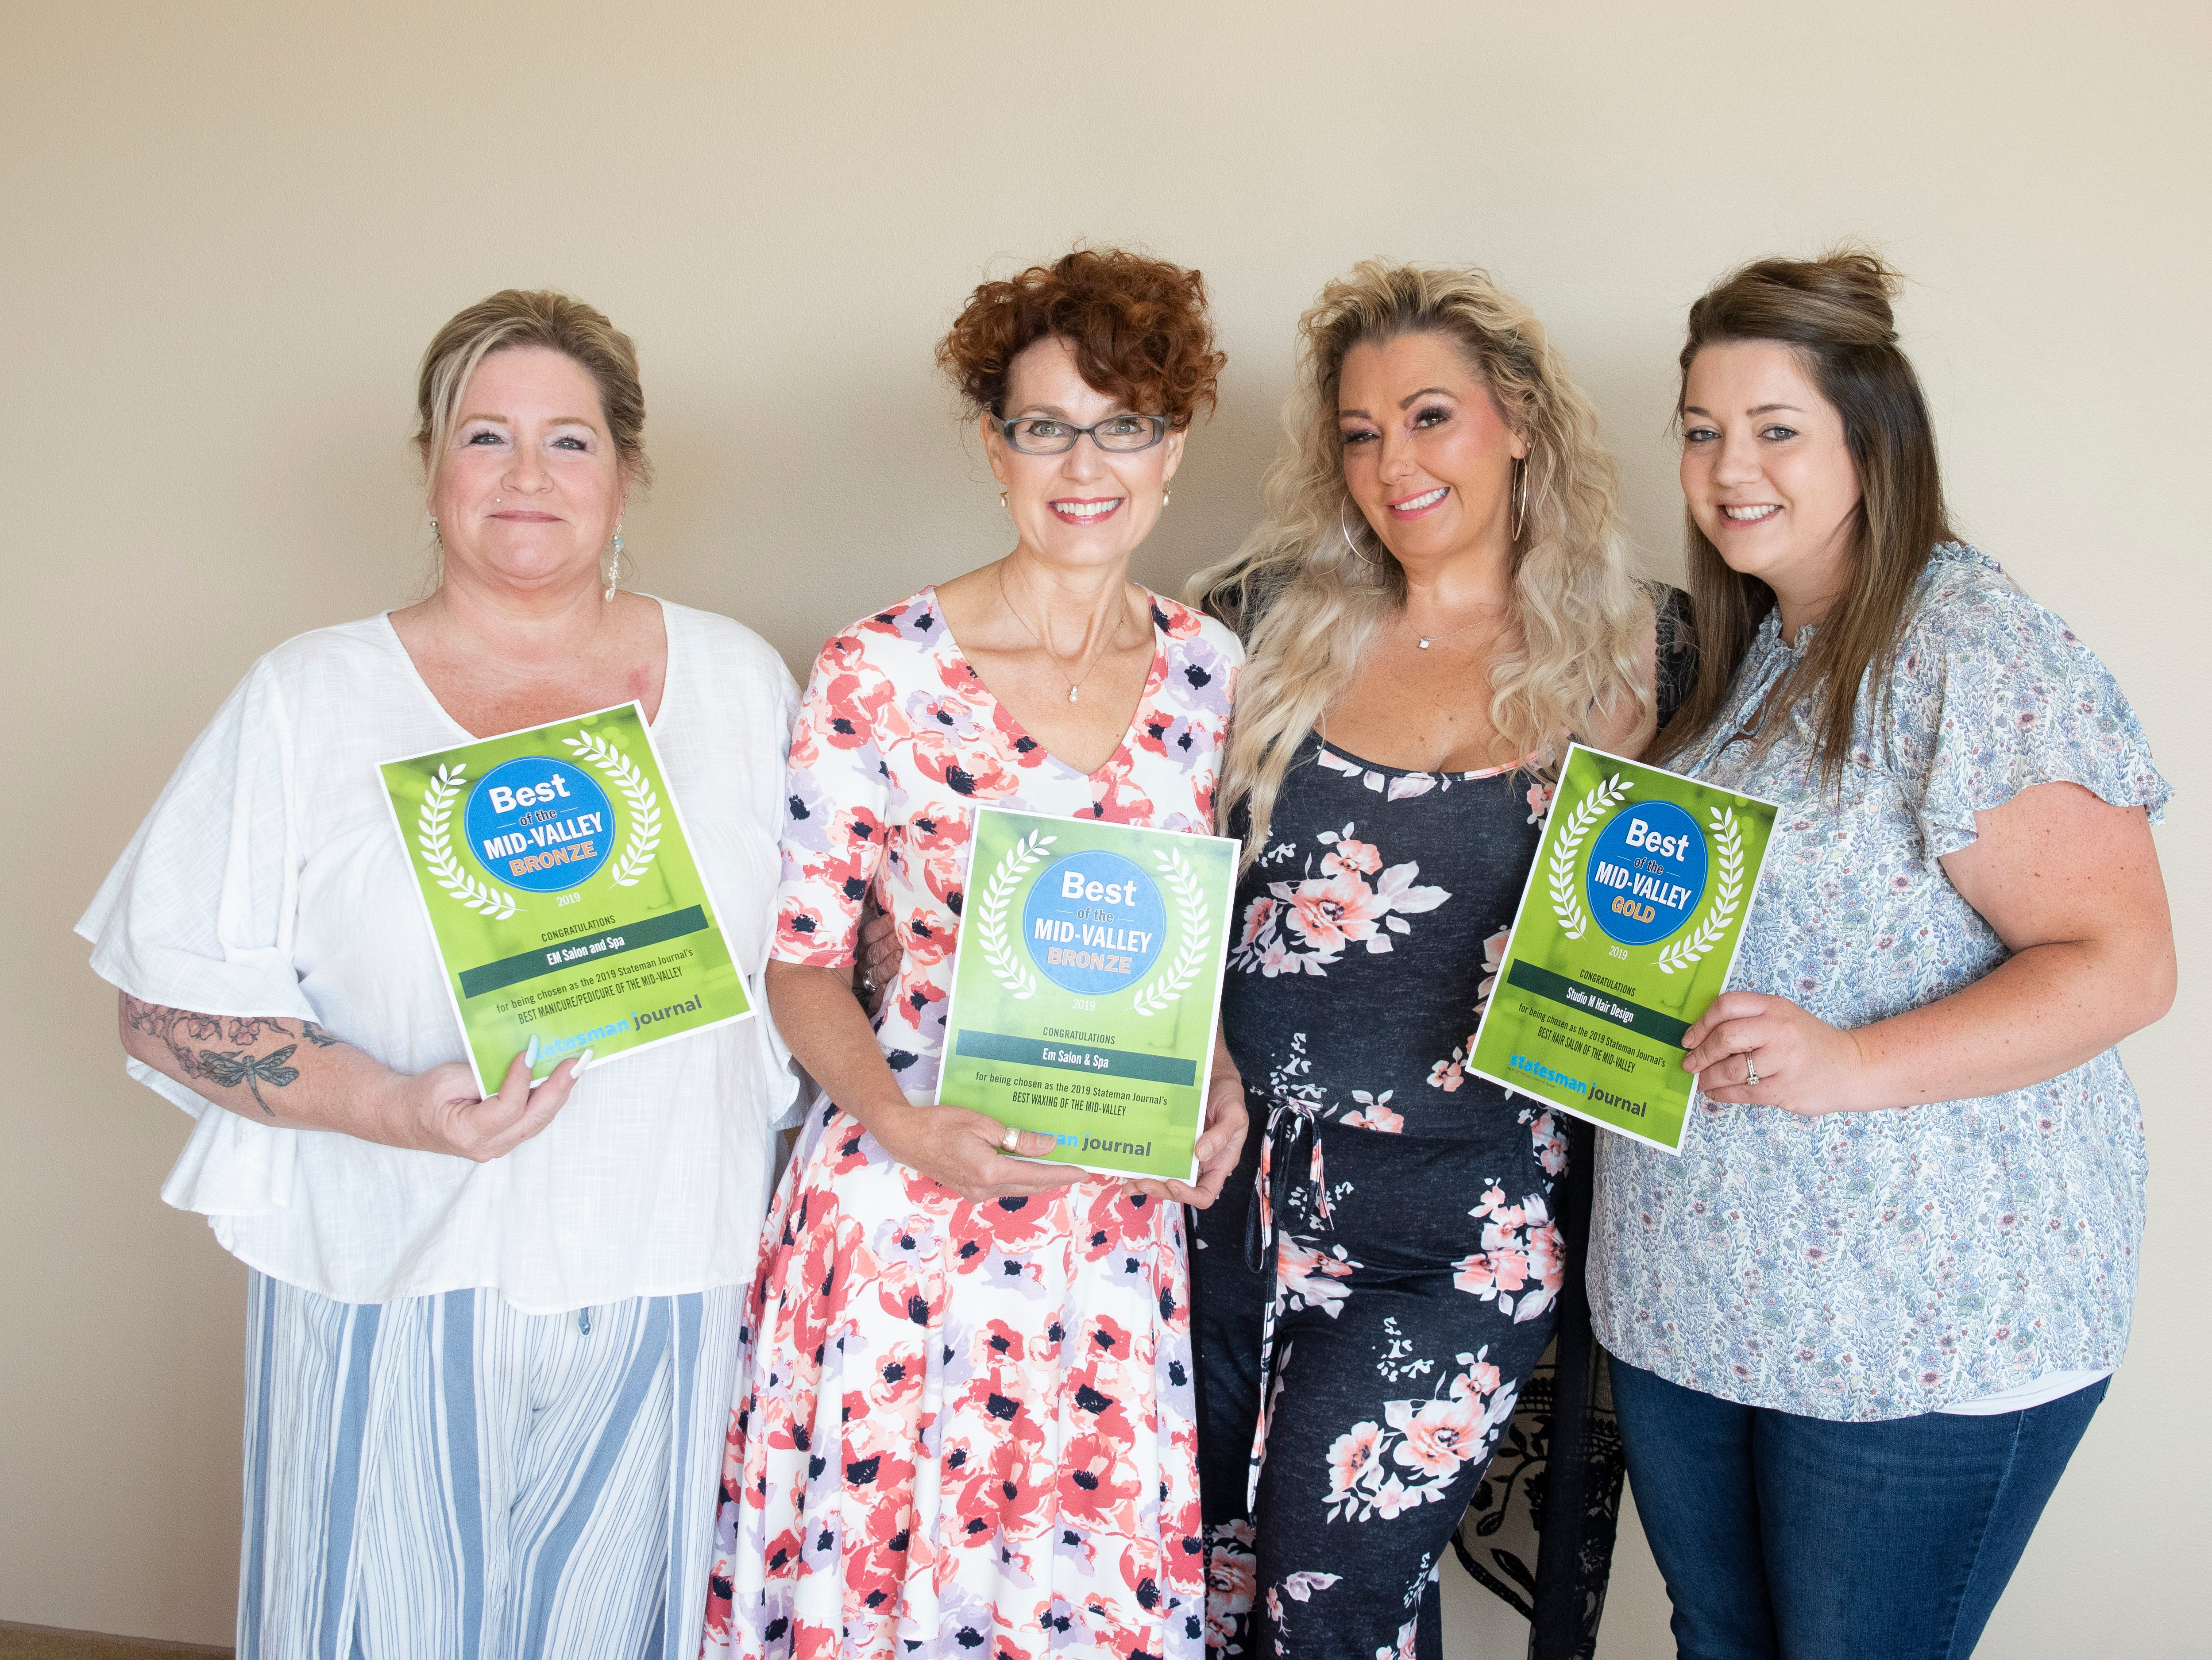 EM Salon and Spa won bronze for Best Manicure,Pedicure and bronze for Best Waxing in the 2019 Best of the Mid-Valley.